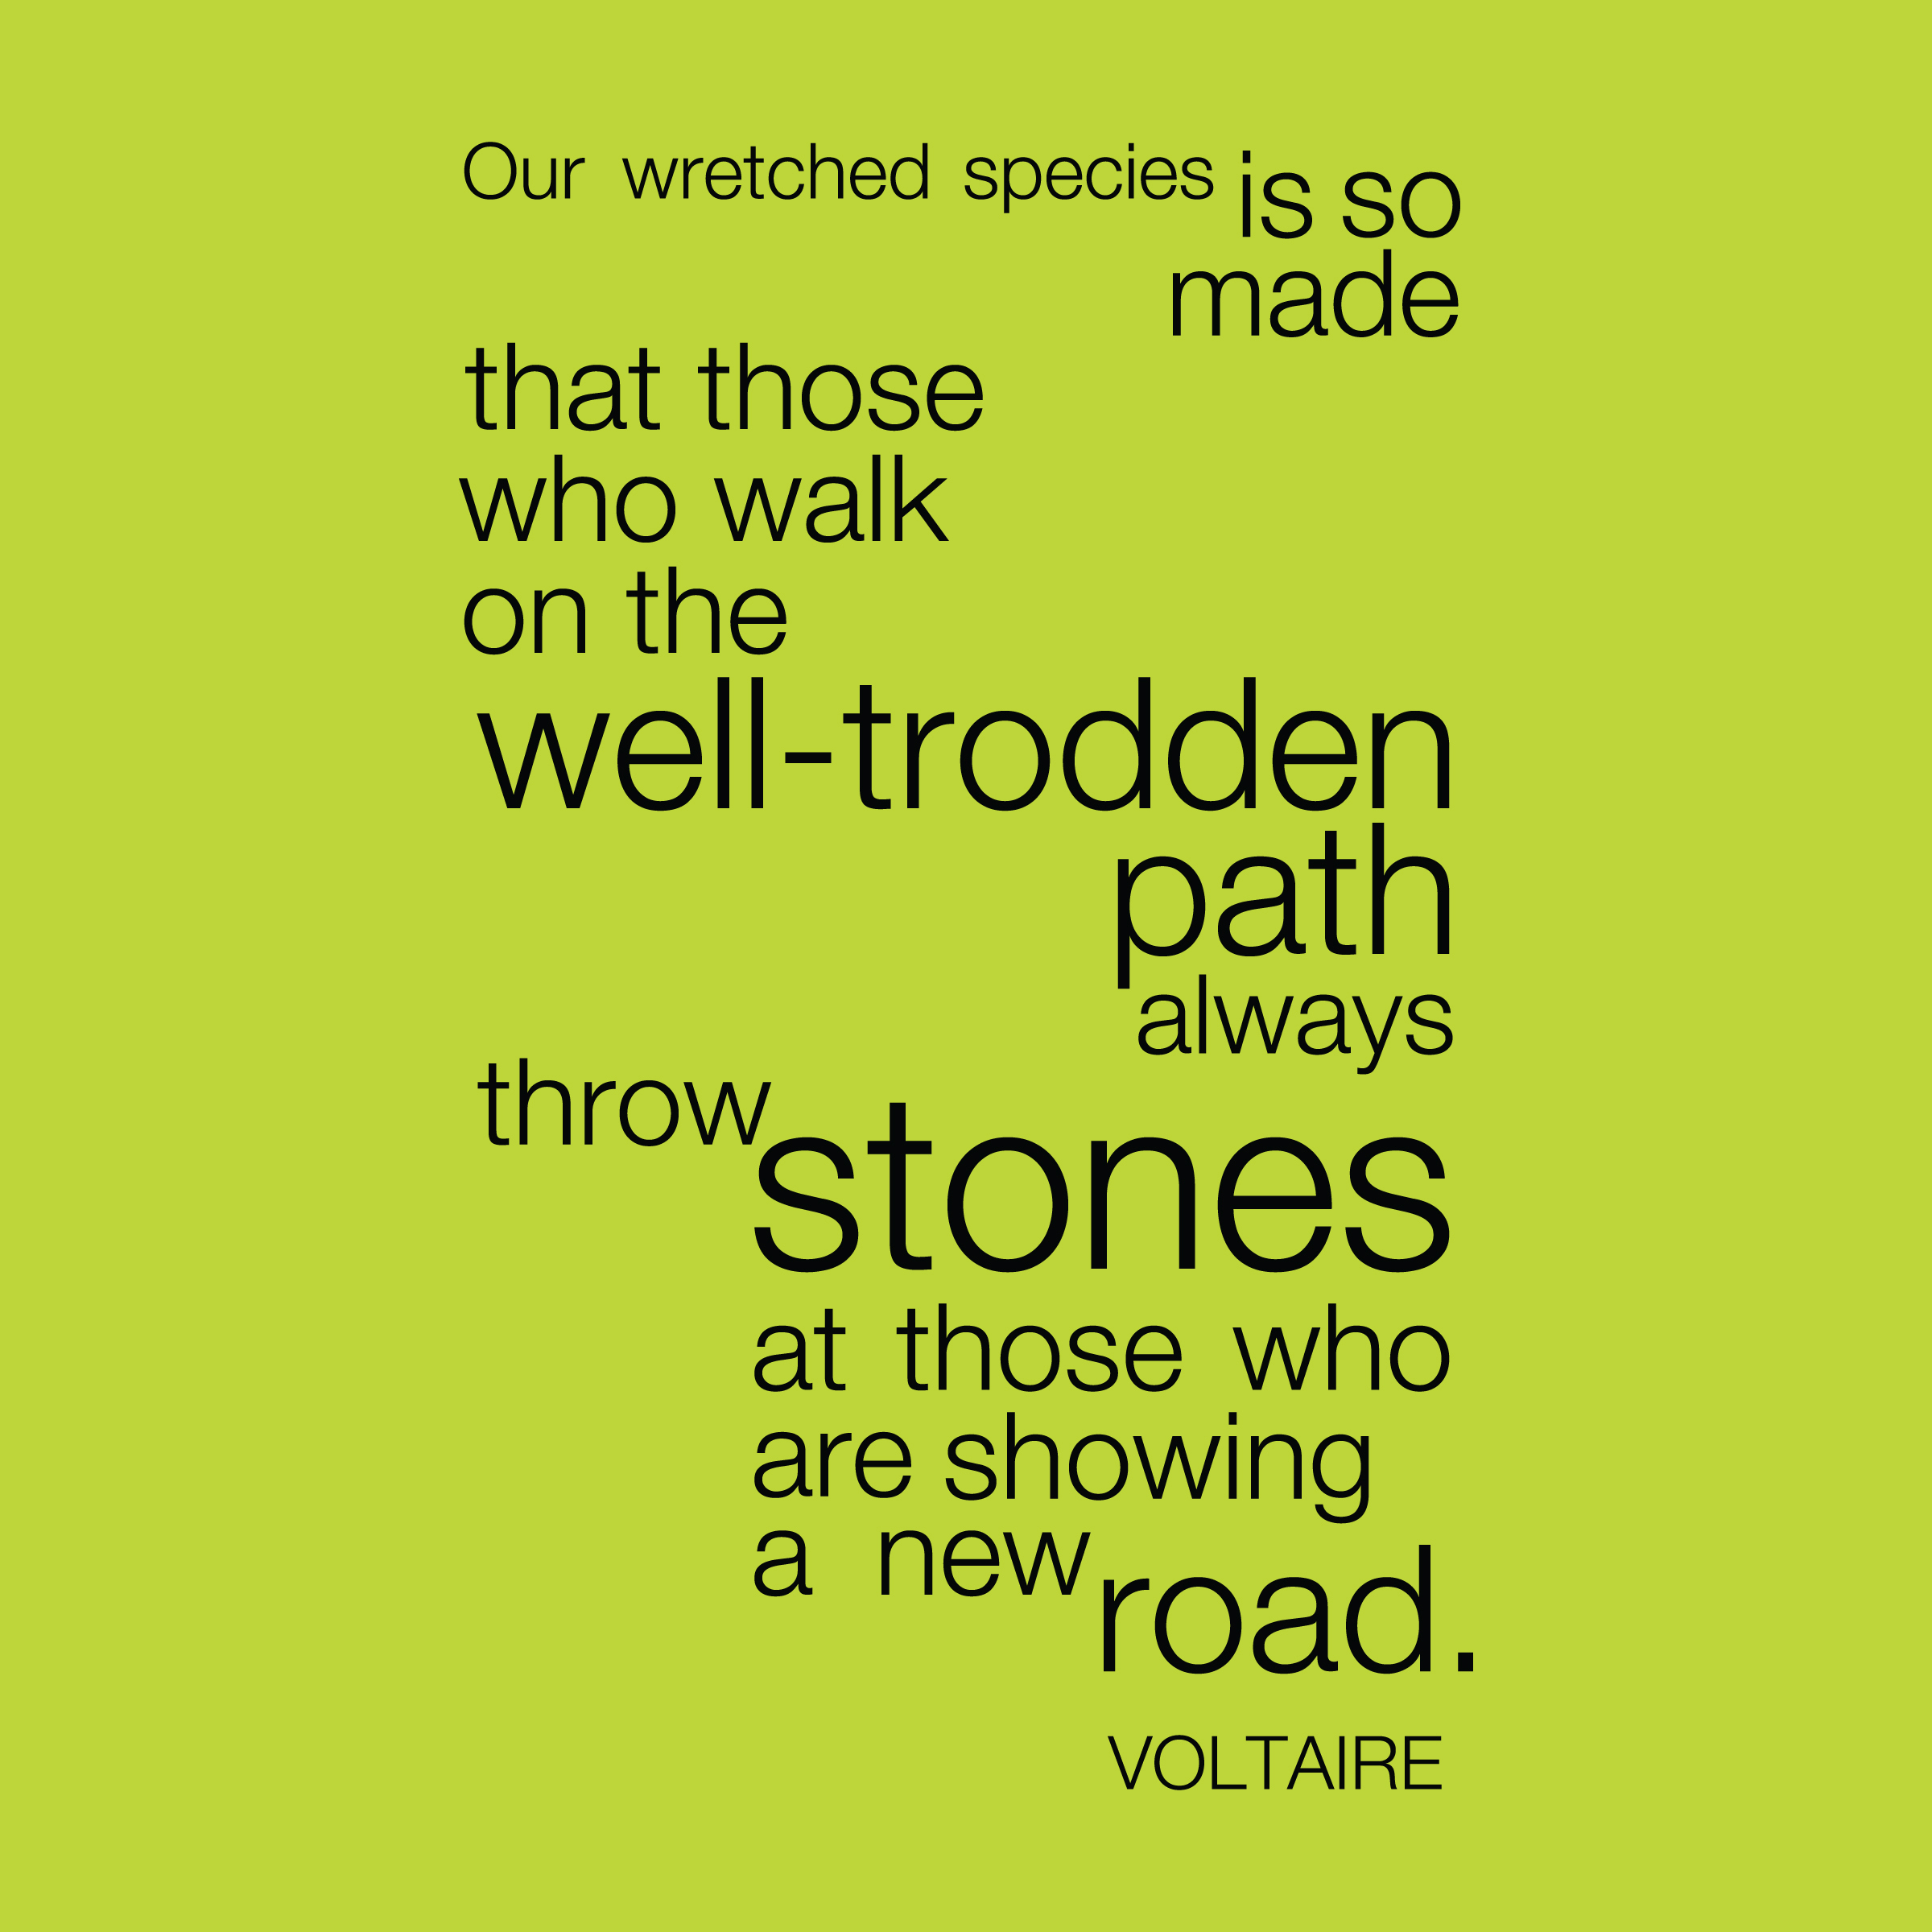 Quotes: 8 Ancient Voltaire Quotes To Ponder